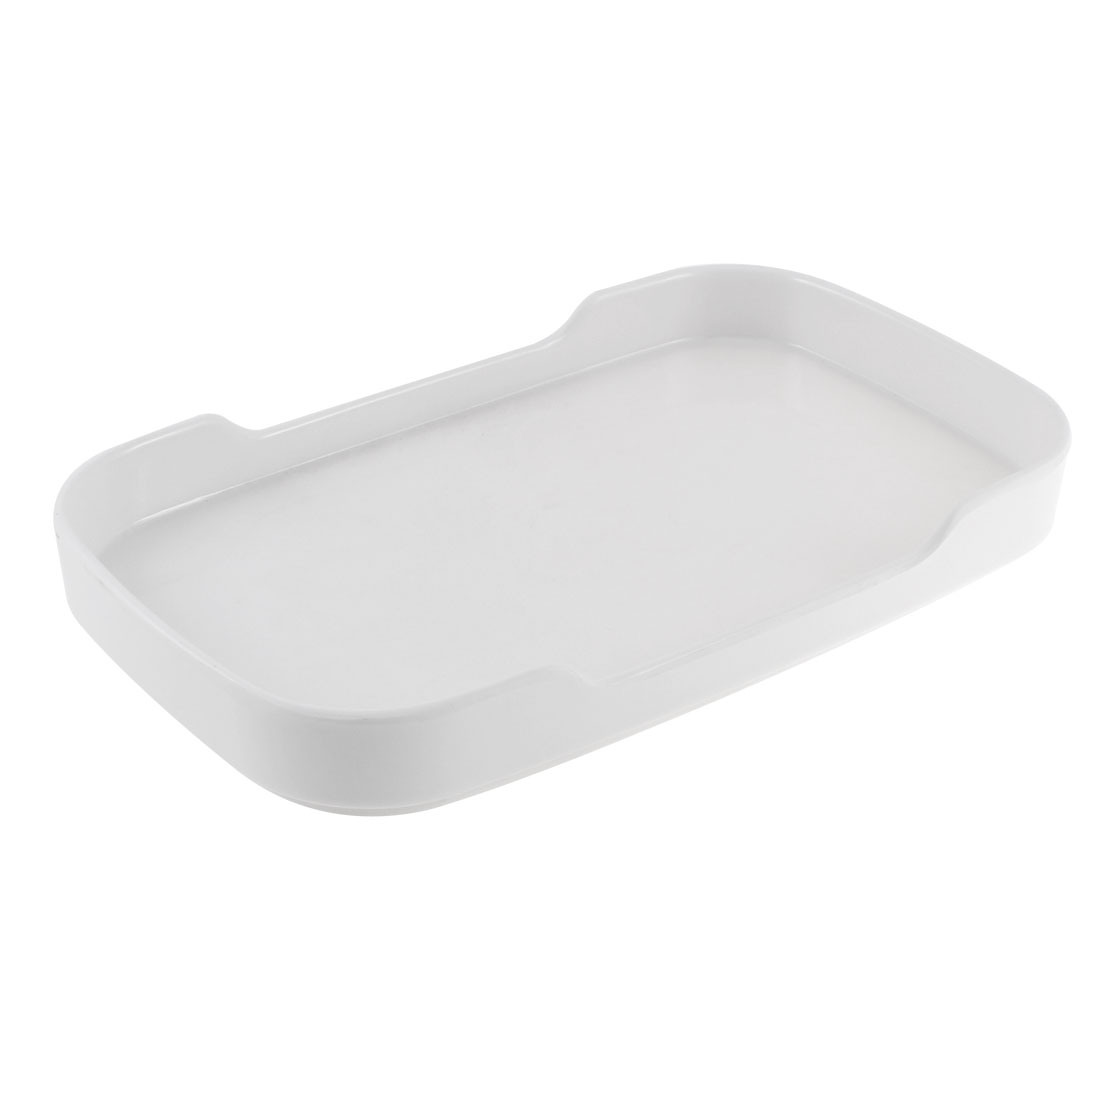 Buffet Hot Pot Plastic Rectangle Shaped Tray Dish Plate White 8.5''